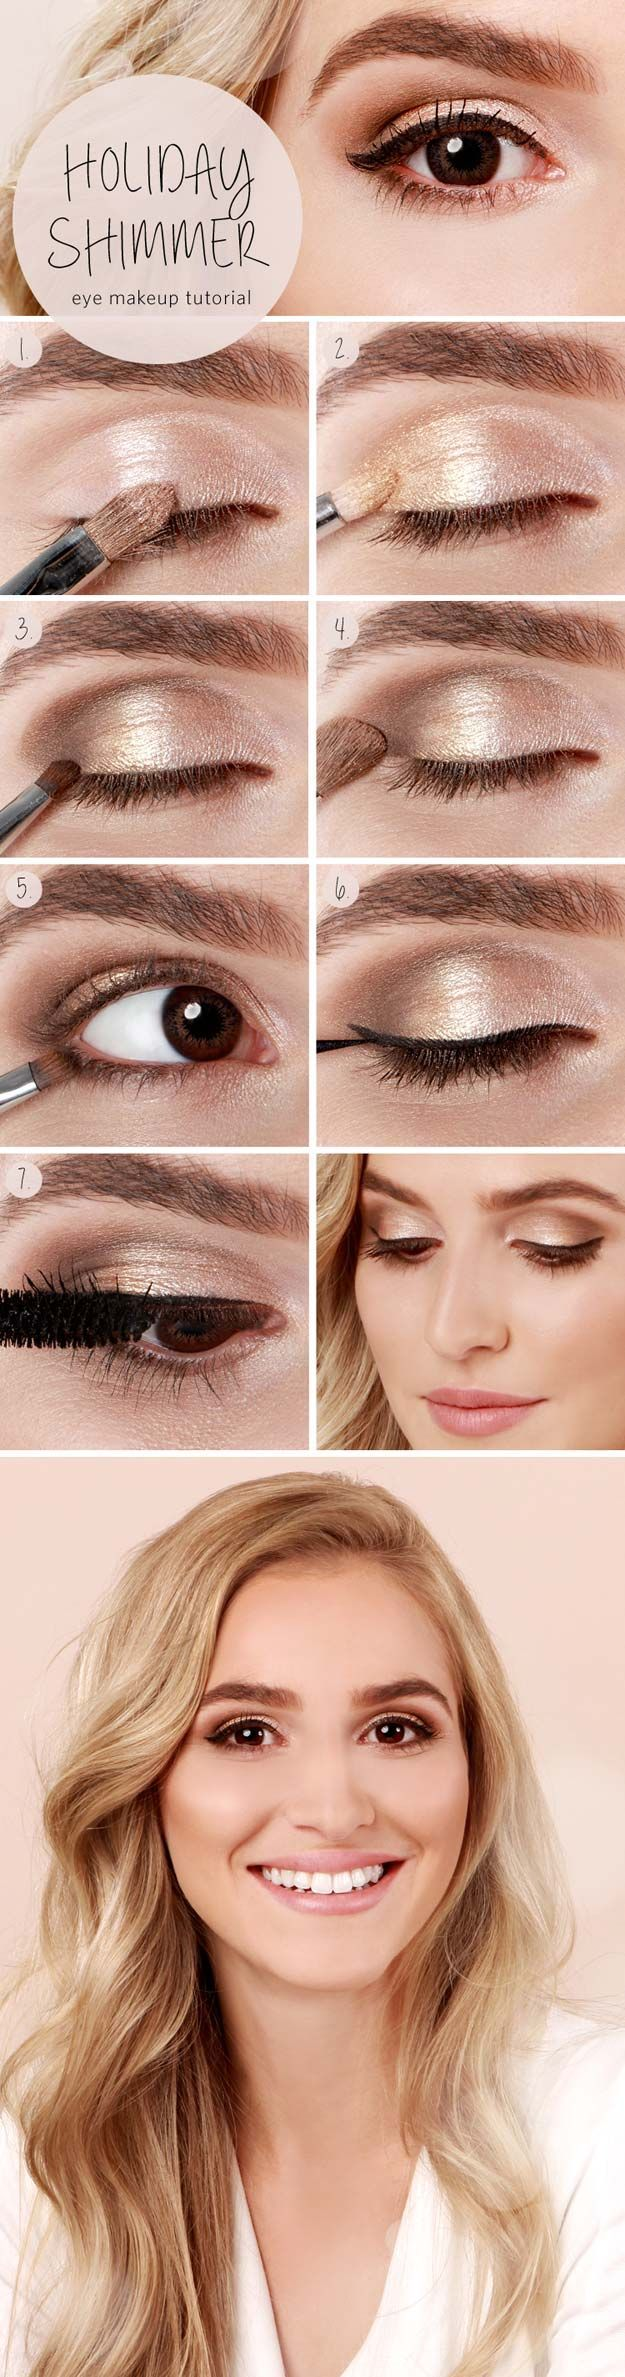 Best Makeup Tutorials for Teens -Holiday Shimmer Eye Tutorial - Easy Makeup Idea...